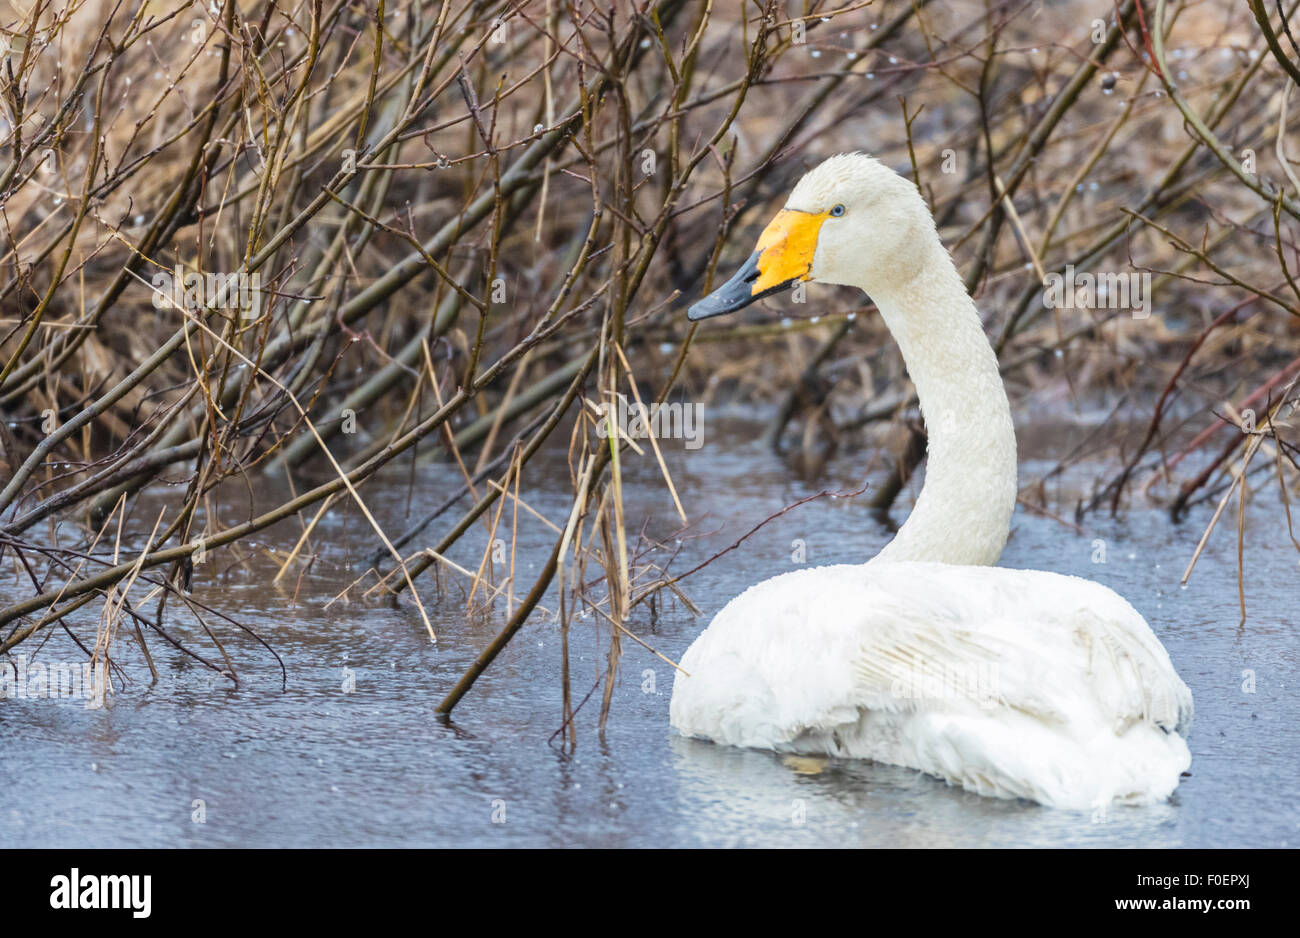 Whooper swan, Cygnus cygnus,  lying in water and turning towards camera, Gällivare, Swedish Lapland, Sweden Stock Photo